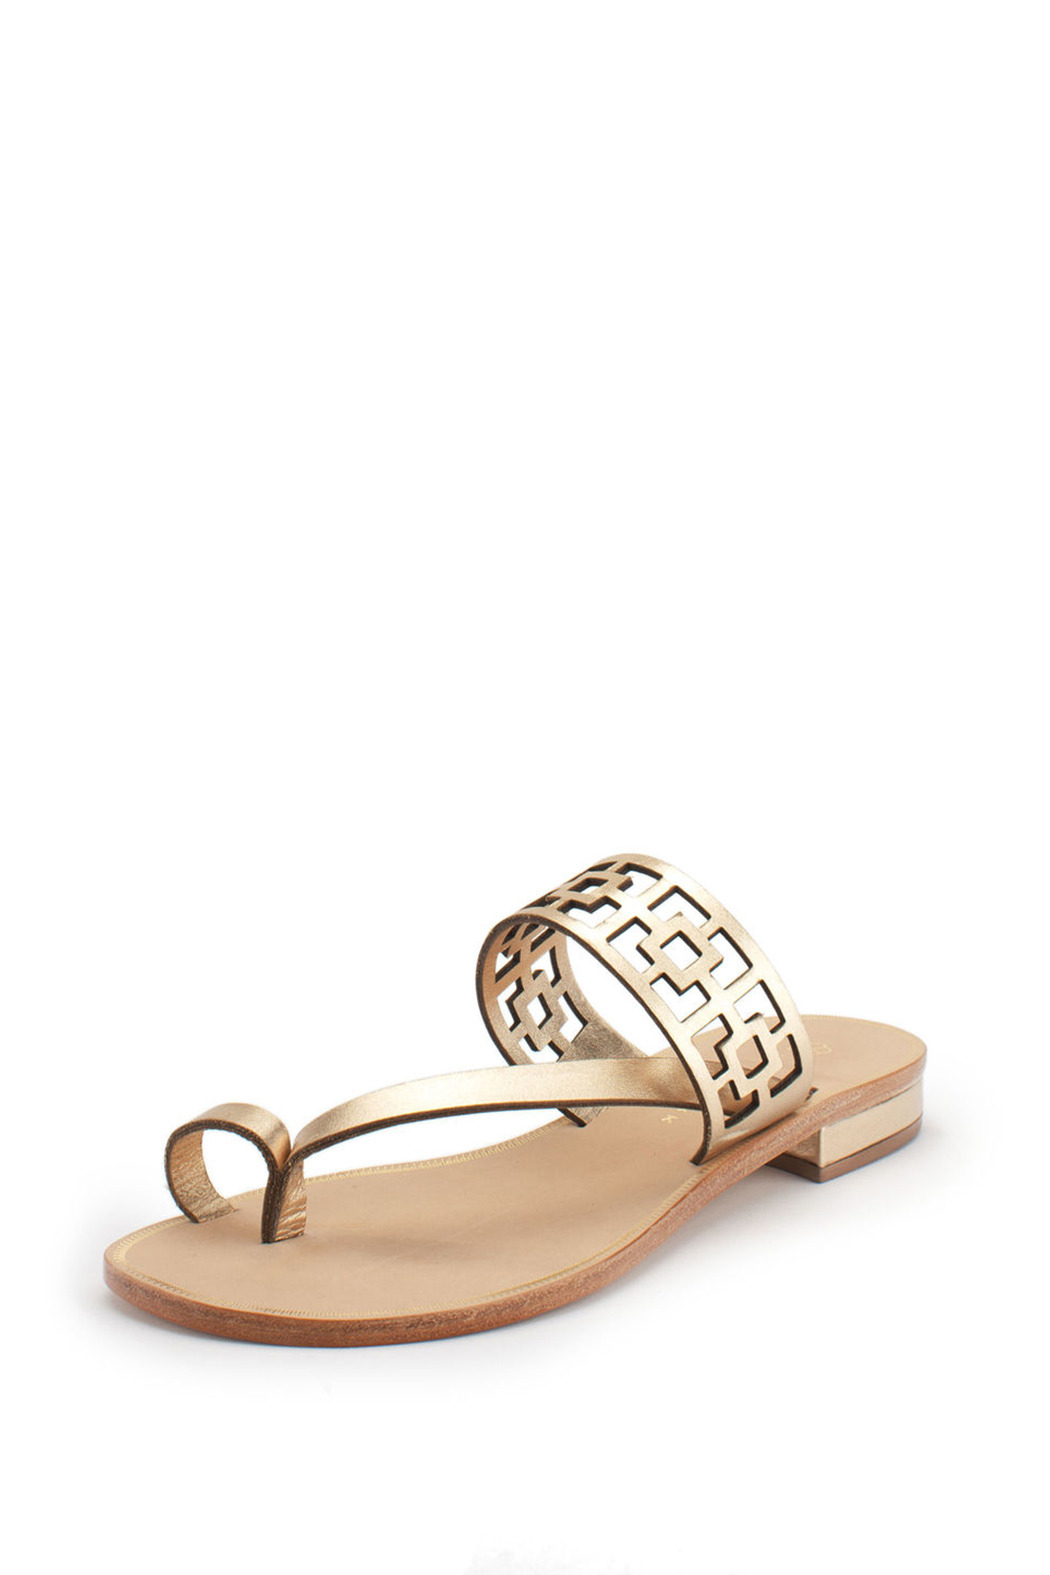 Trina Turk Gold Brentwood Sandal - Front Cropped Image